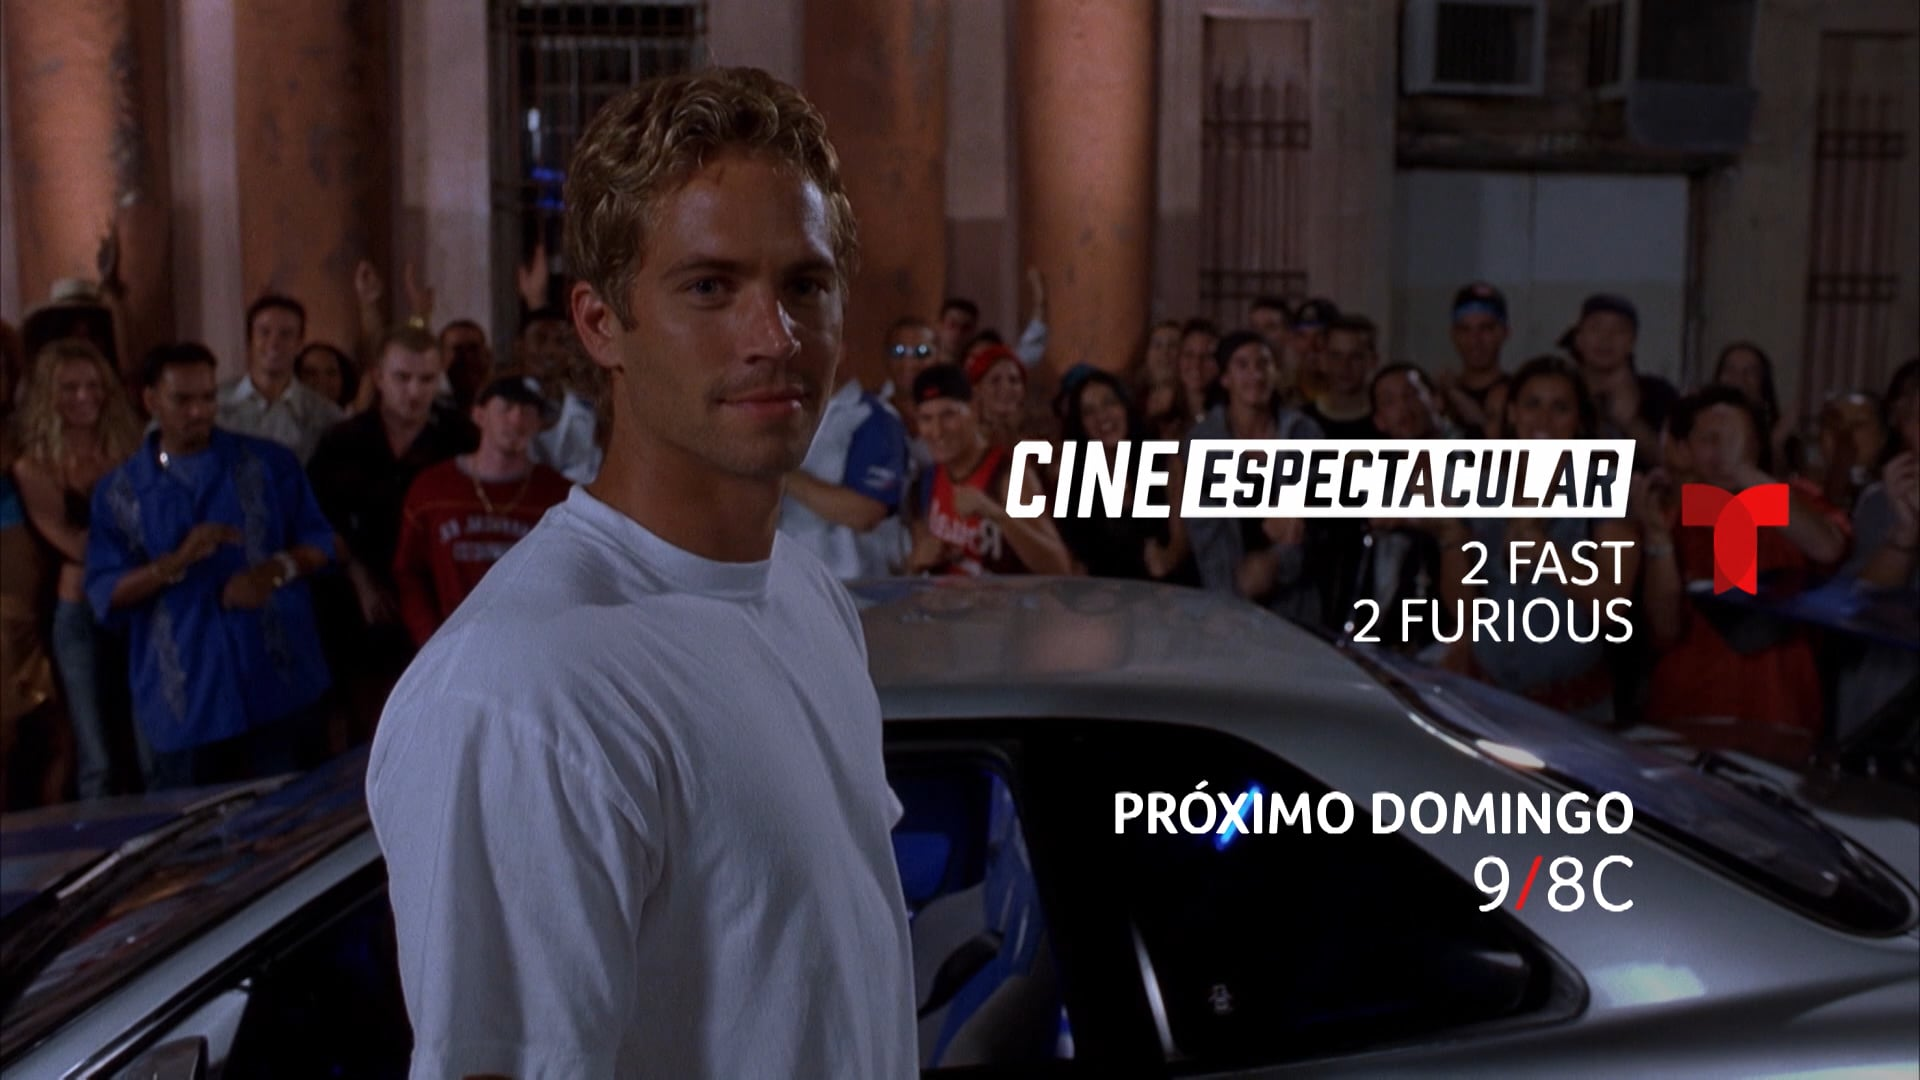 CINE ESPECTACULAR: 2 FAST 2 FURIOUS – TUNE-IN